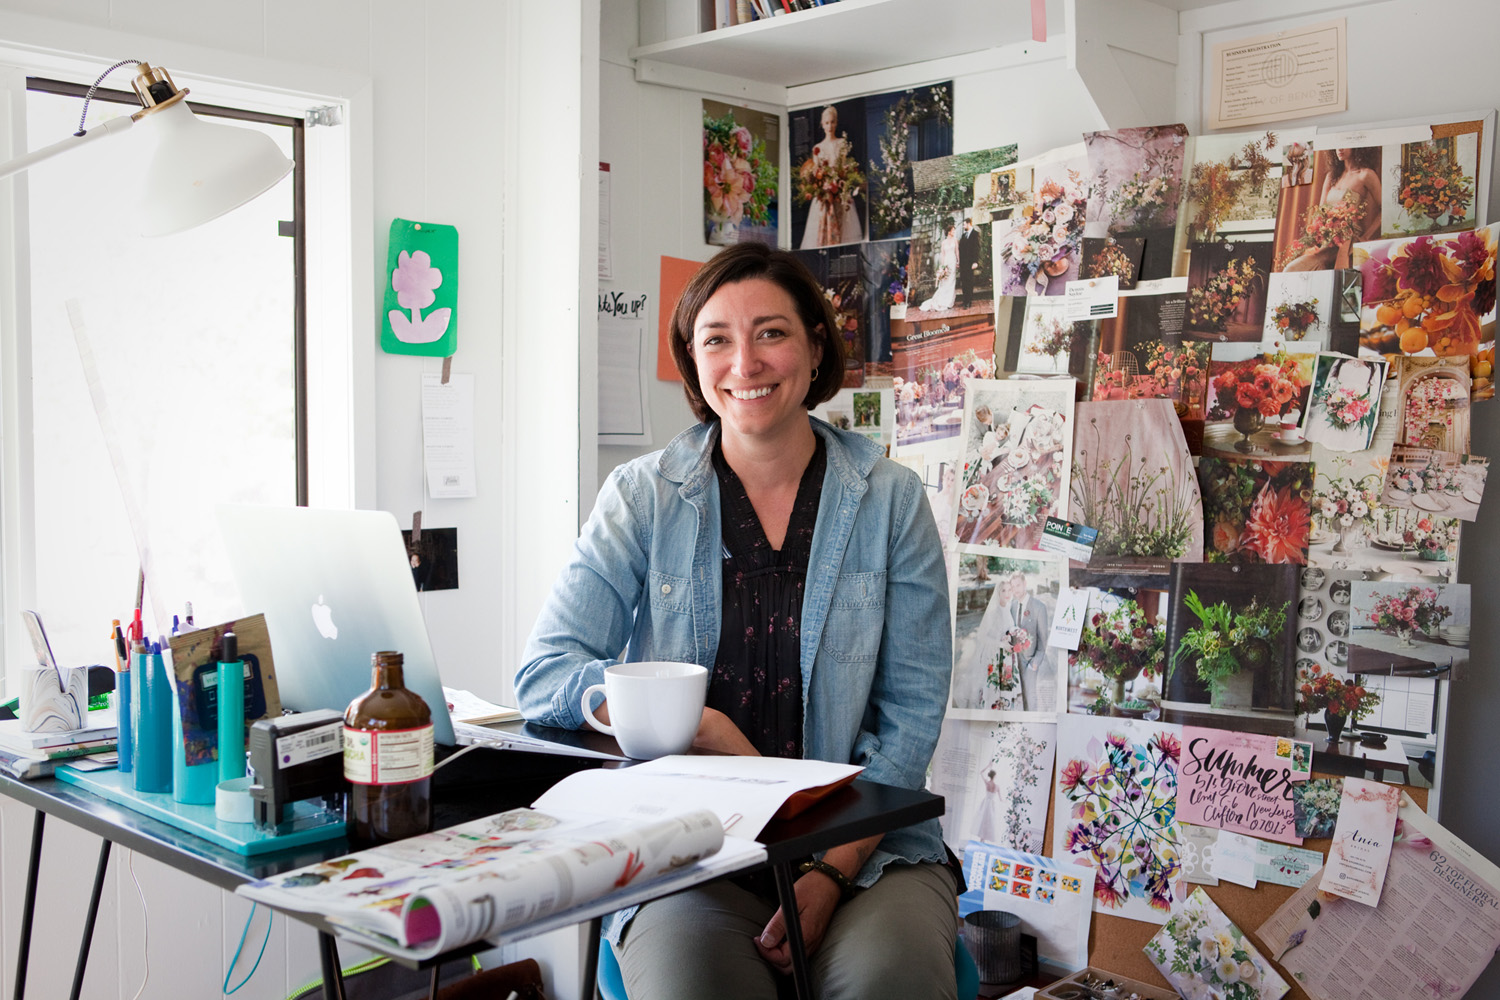 Summer Robbins-Sutter, 41, in her office at her studio